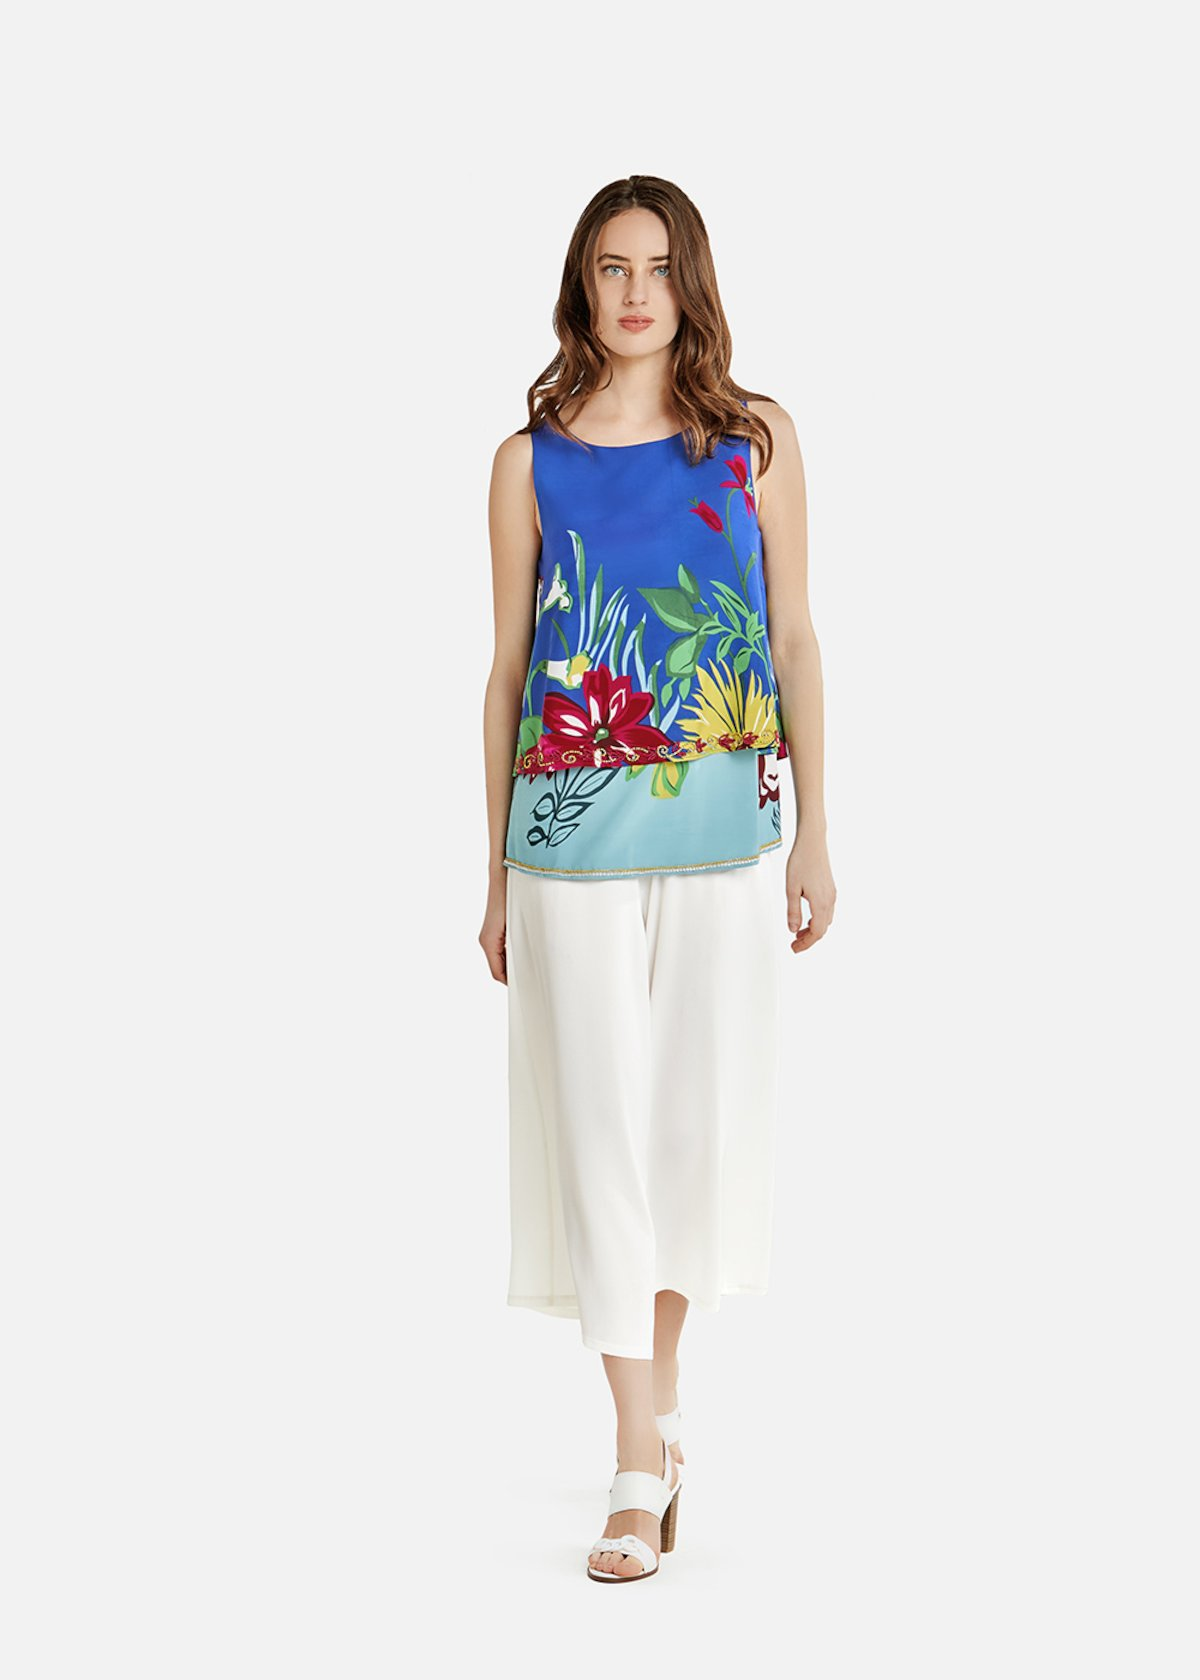 Floral Toffy top with beads on the bottom - Formentera / Fuxia Fantasia